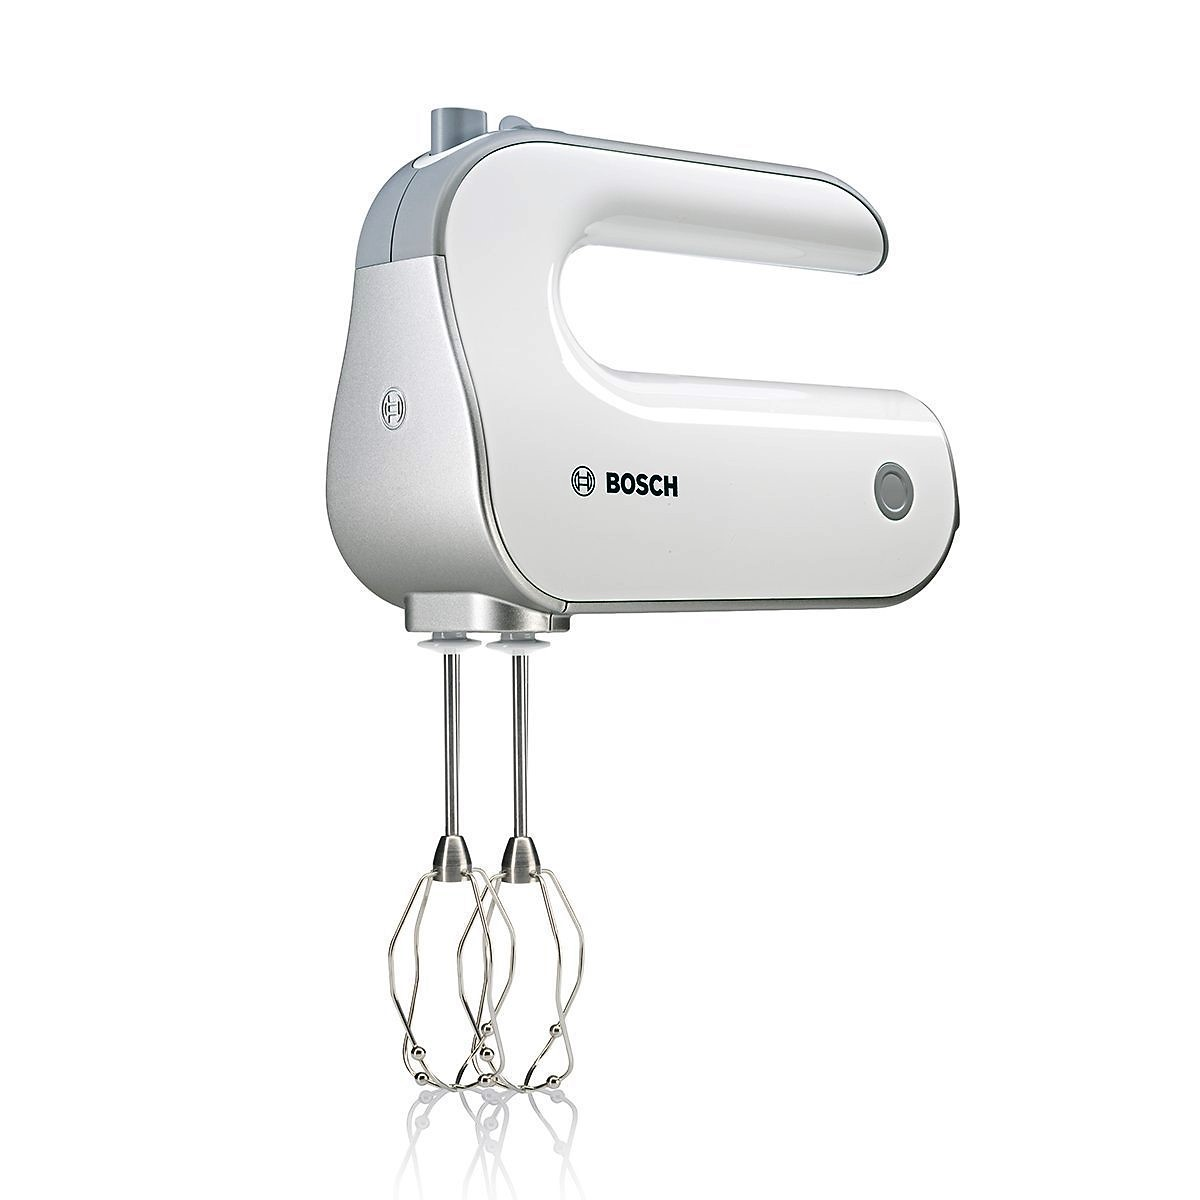 bosch hand mixer mfq4080 1 kitchen spain. Black Bedroom Furniture Sets. Home Design Ideas